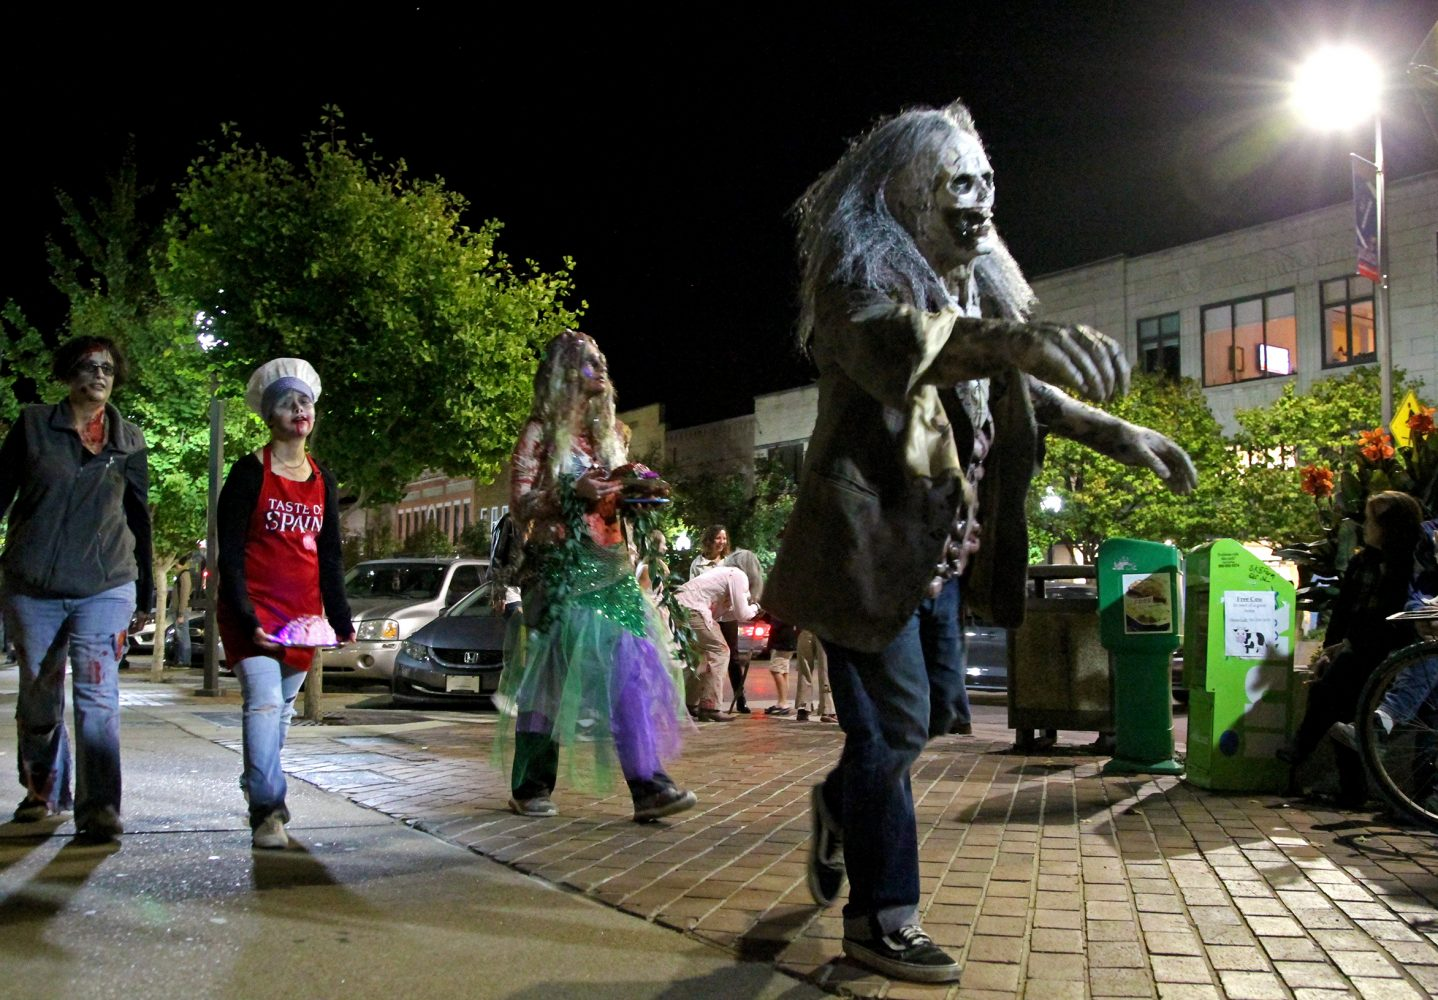 Zombies+walk+along+Massachusetts+as+part+of+the+Zombie+Walk+on+Oct.+20+in+downtown+Lawrence.+Image+by+Chad+Phillips.